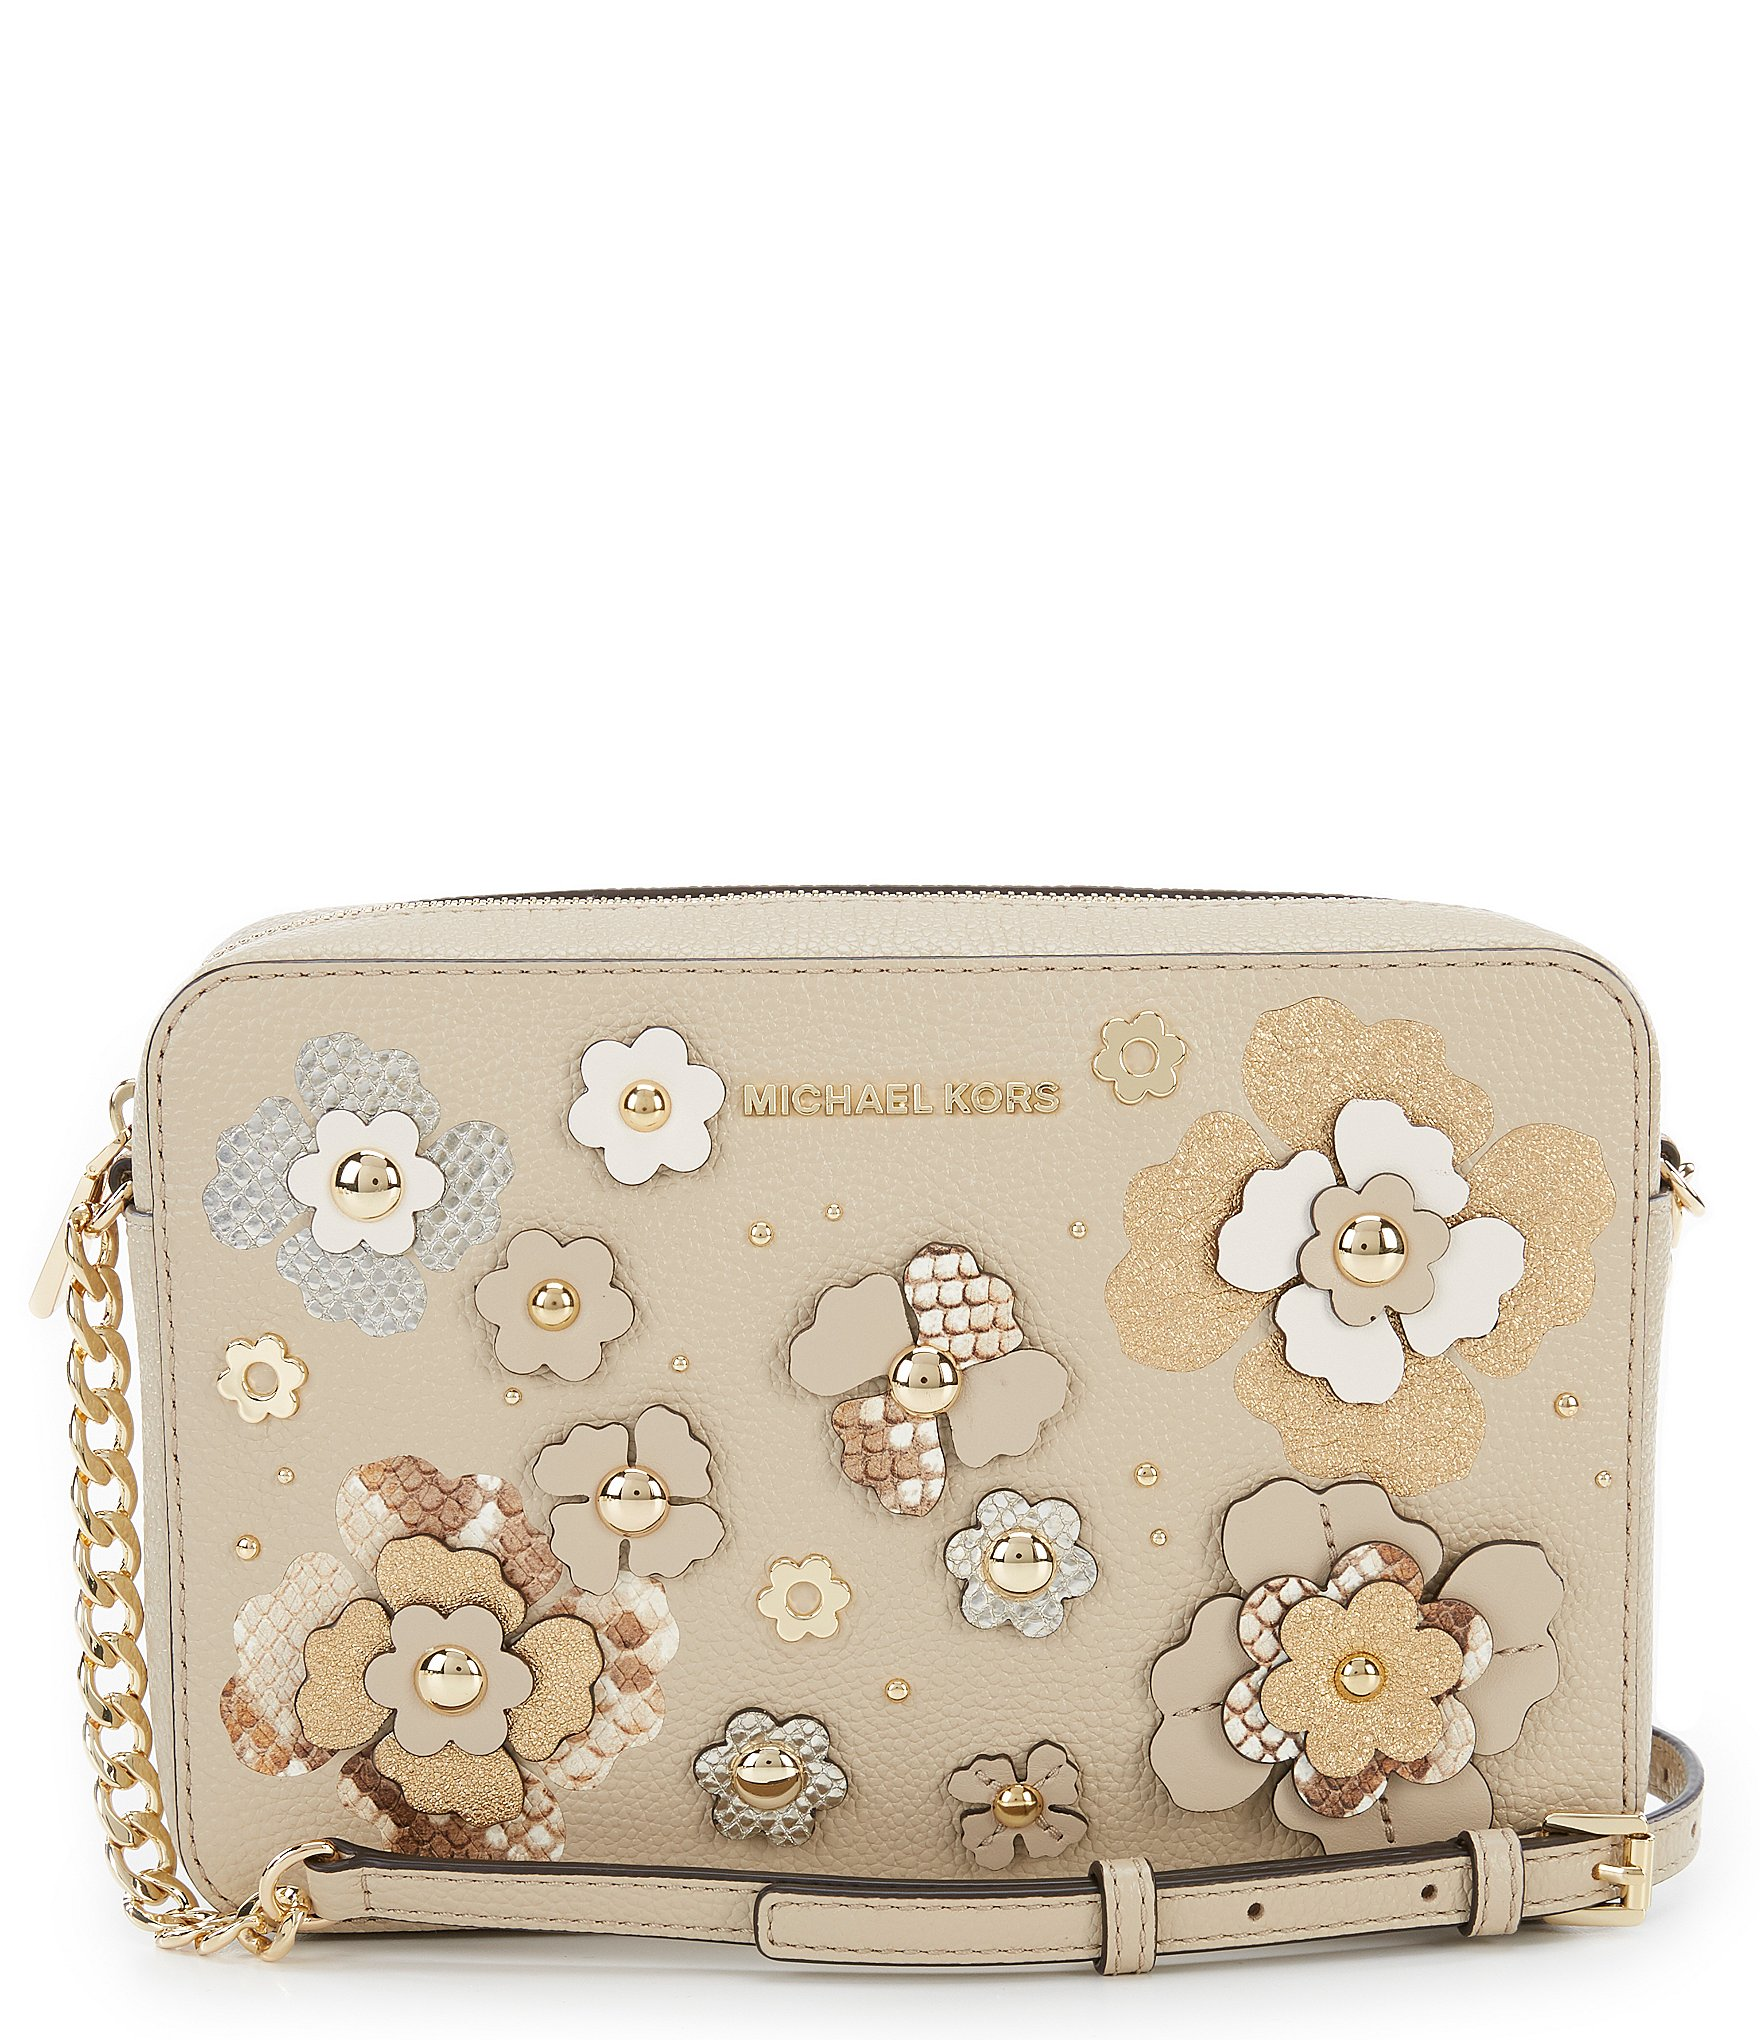 michael kors multi fun tote